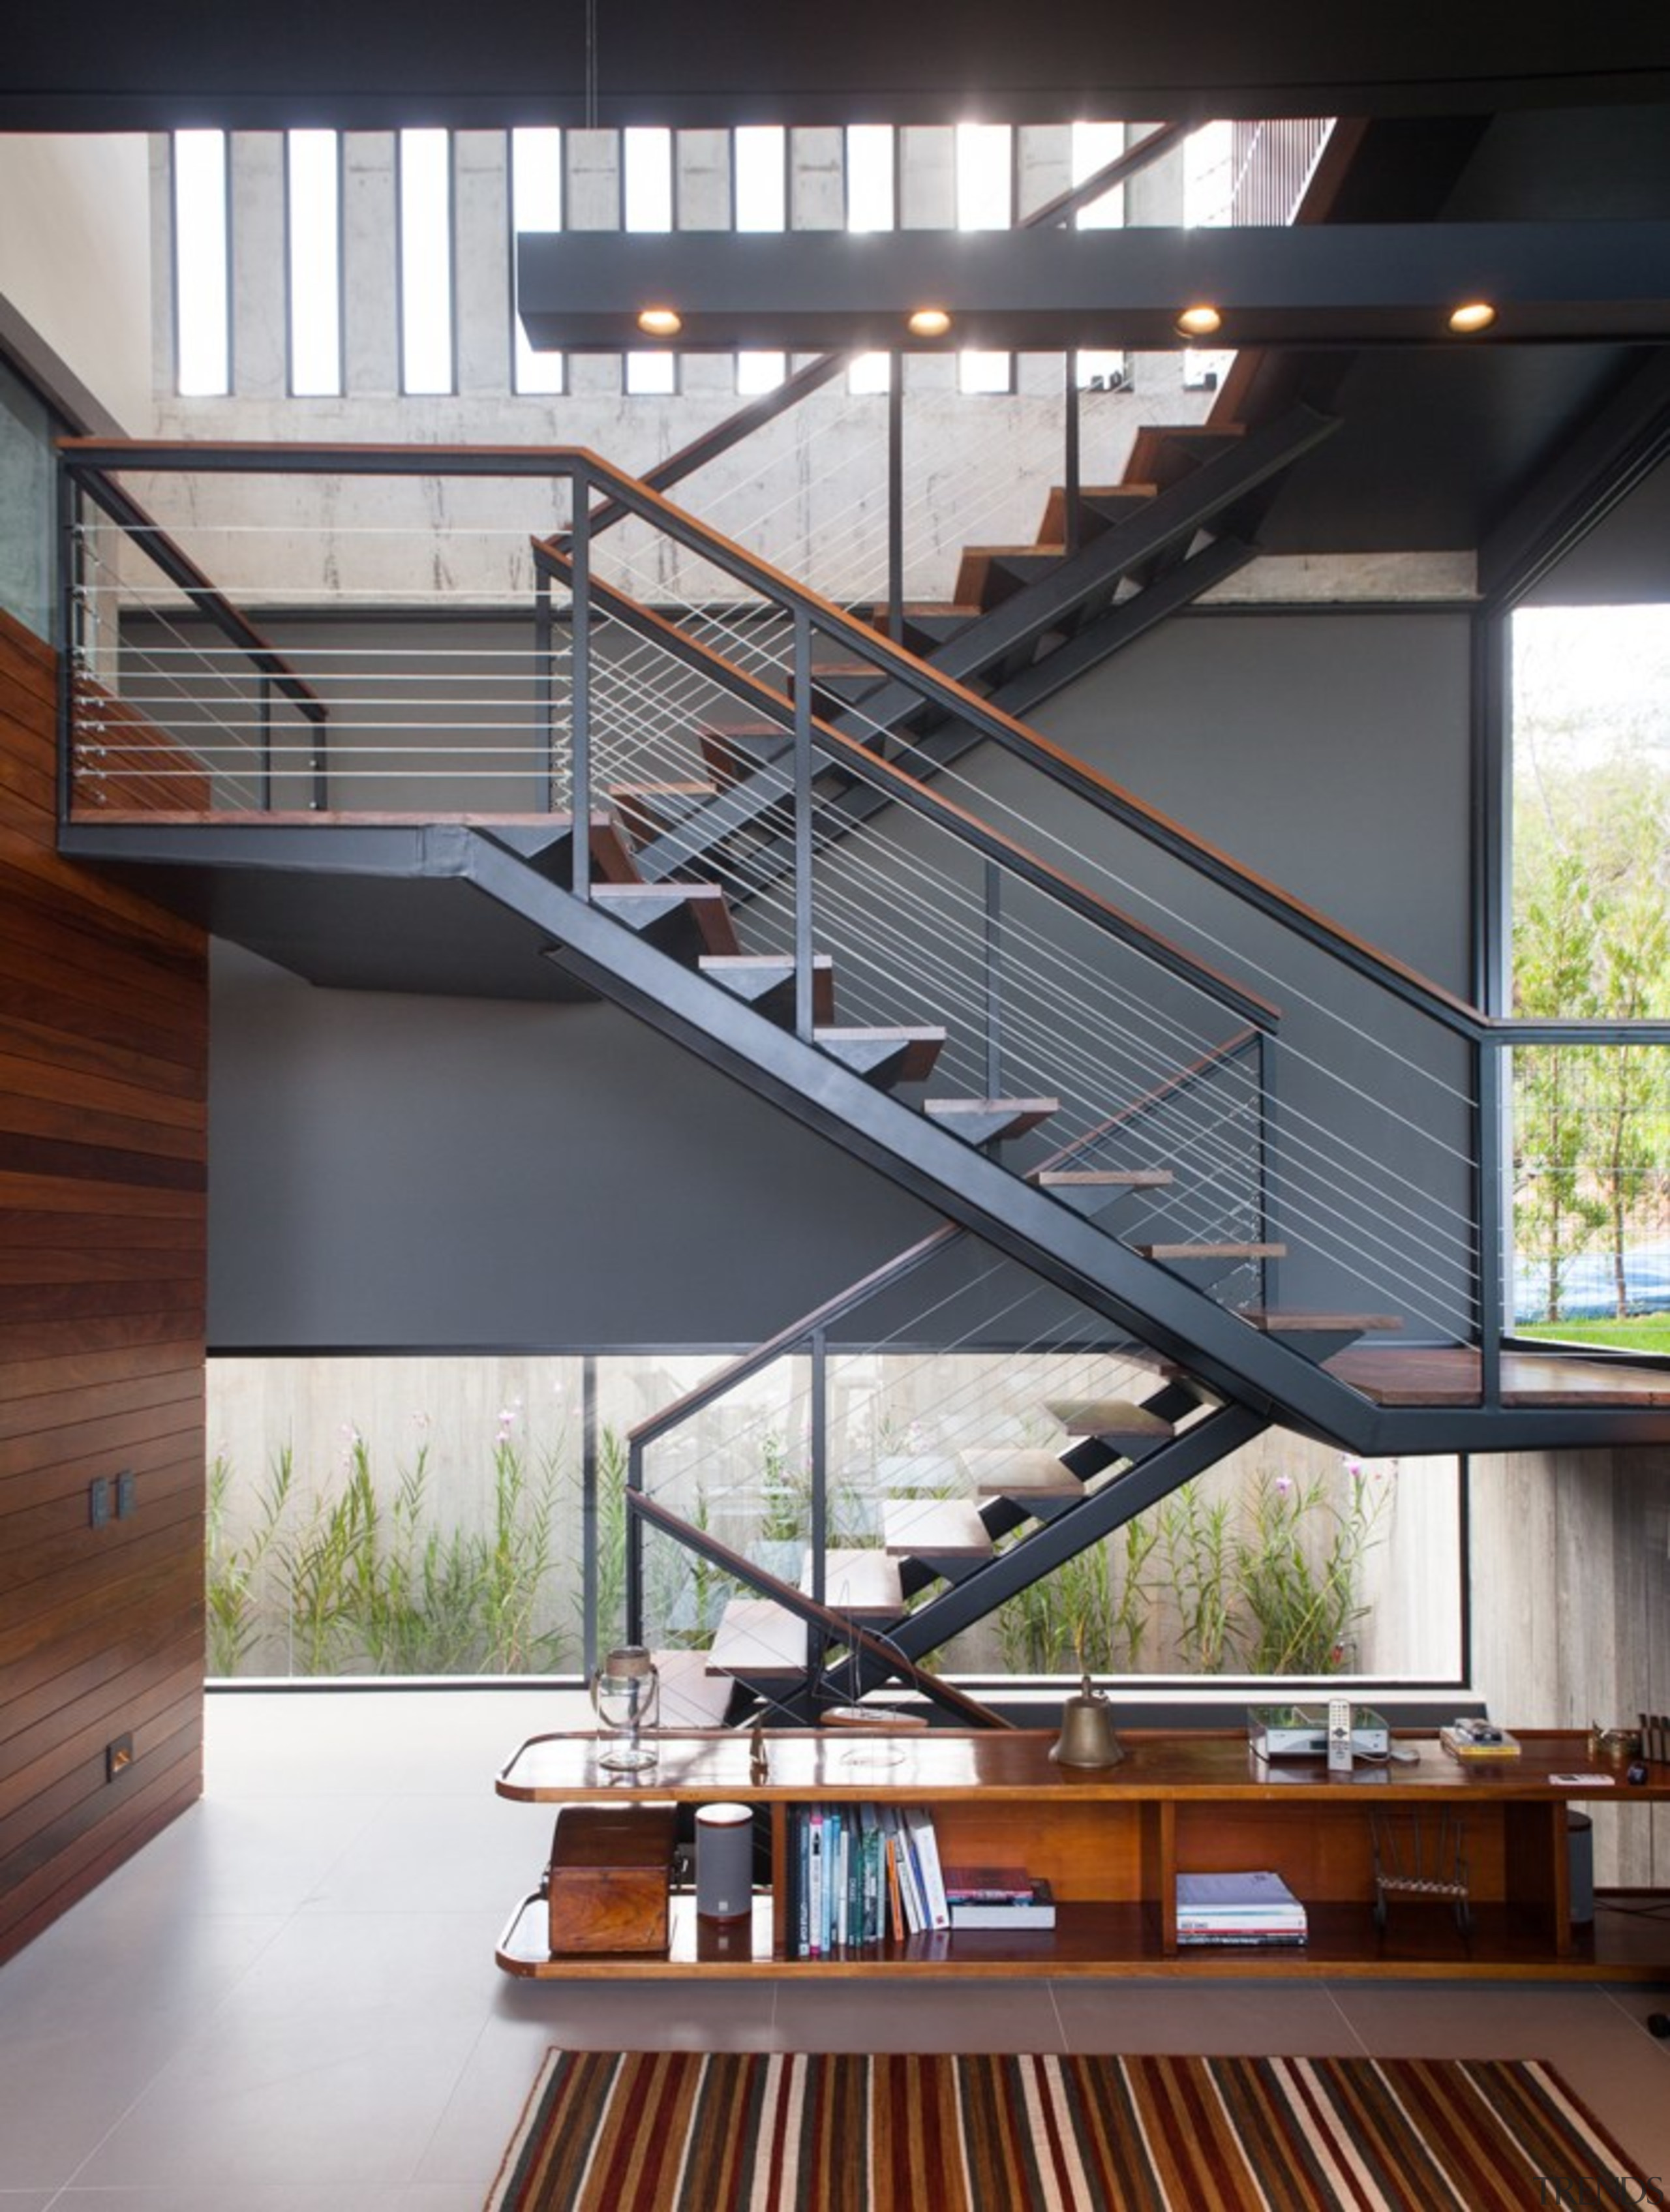 The staircase zig-zags its way up - architecture architecture, daylighting, handrail, house, stairs, gray, white